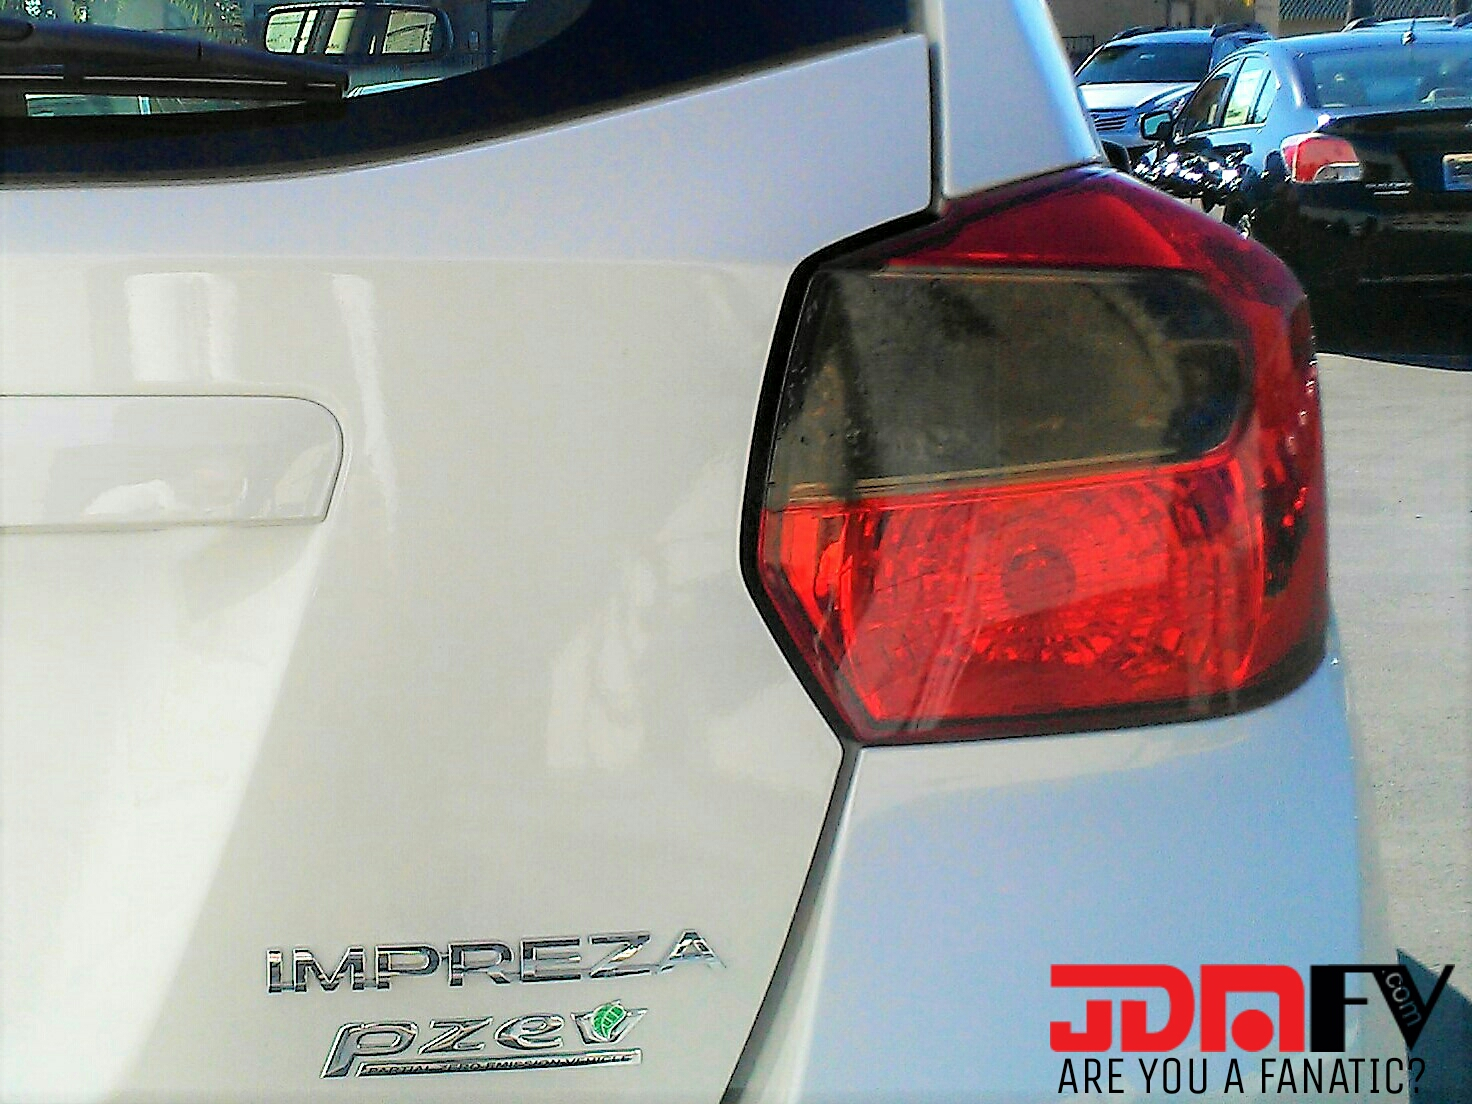 impreza-xv-smoked-tail-light-overlays-jdmfv.jpg